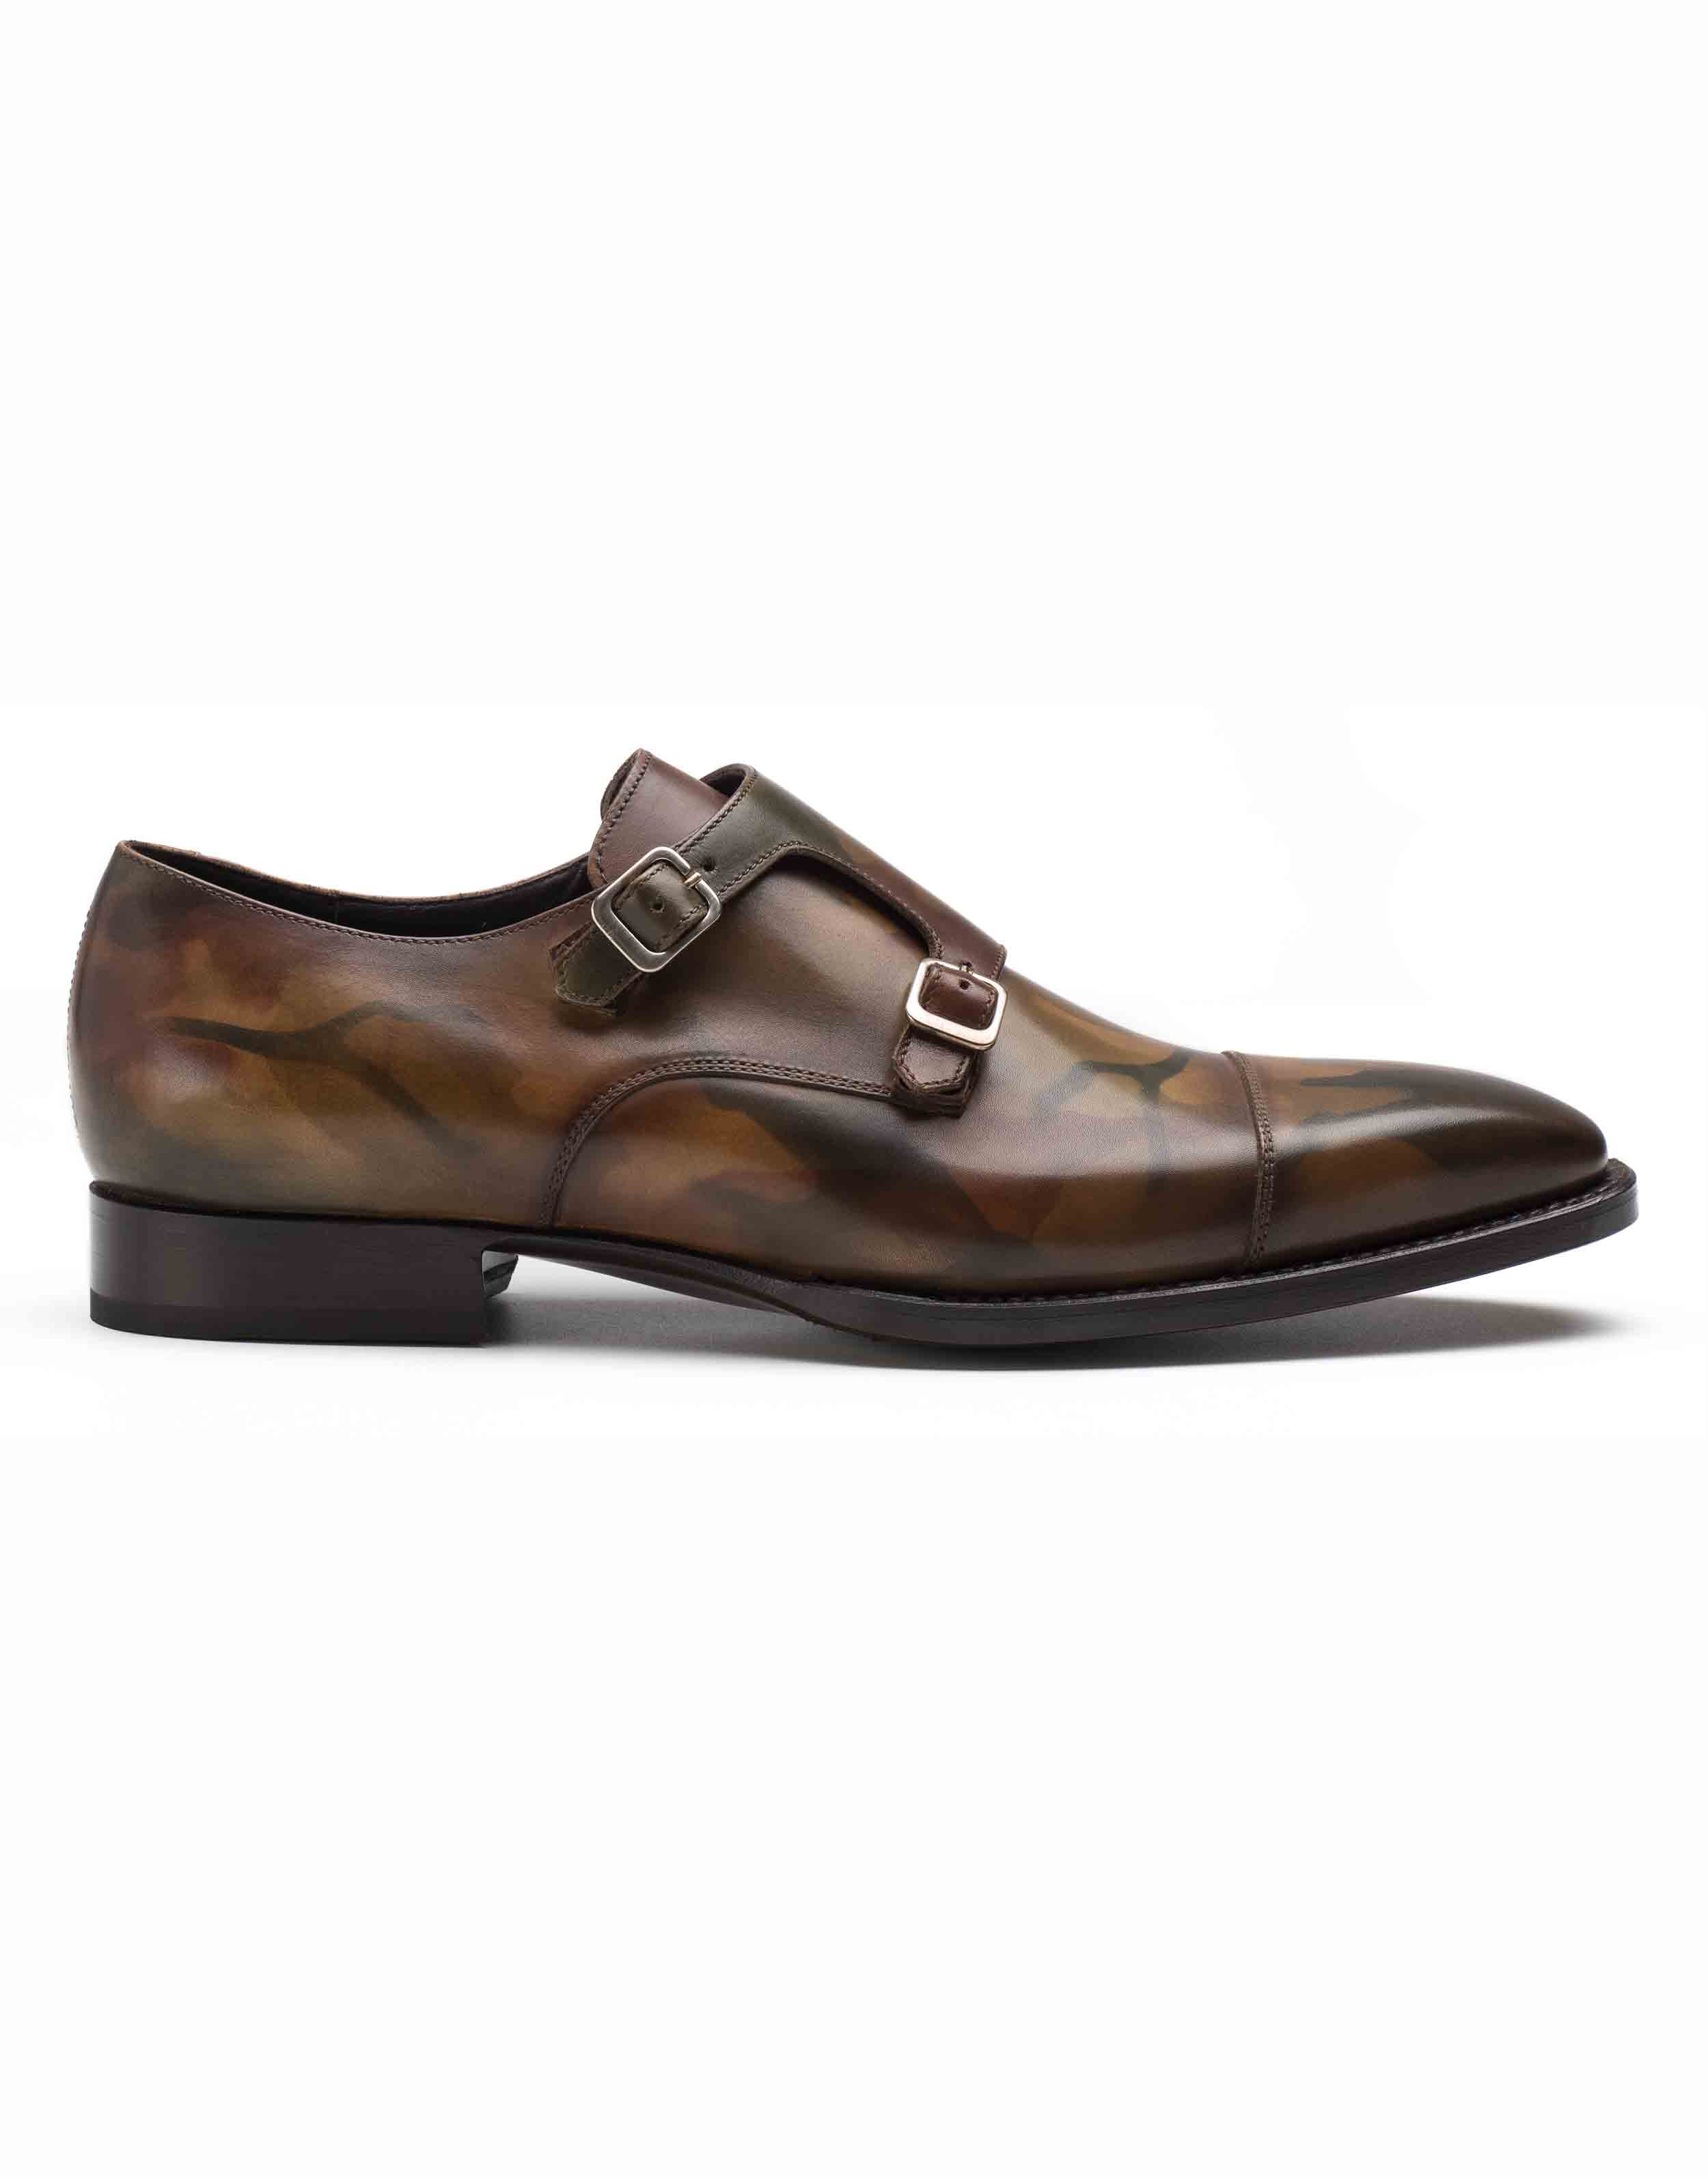 DOUBLE MONK STRAP SHOE1